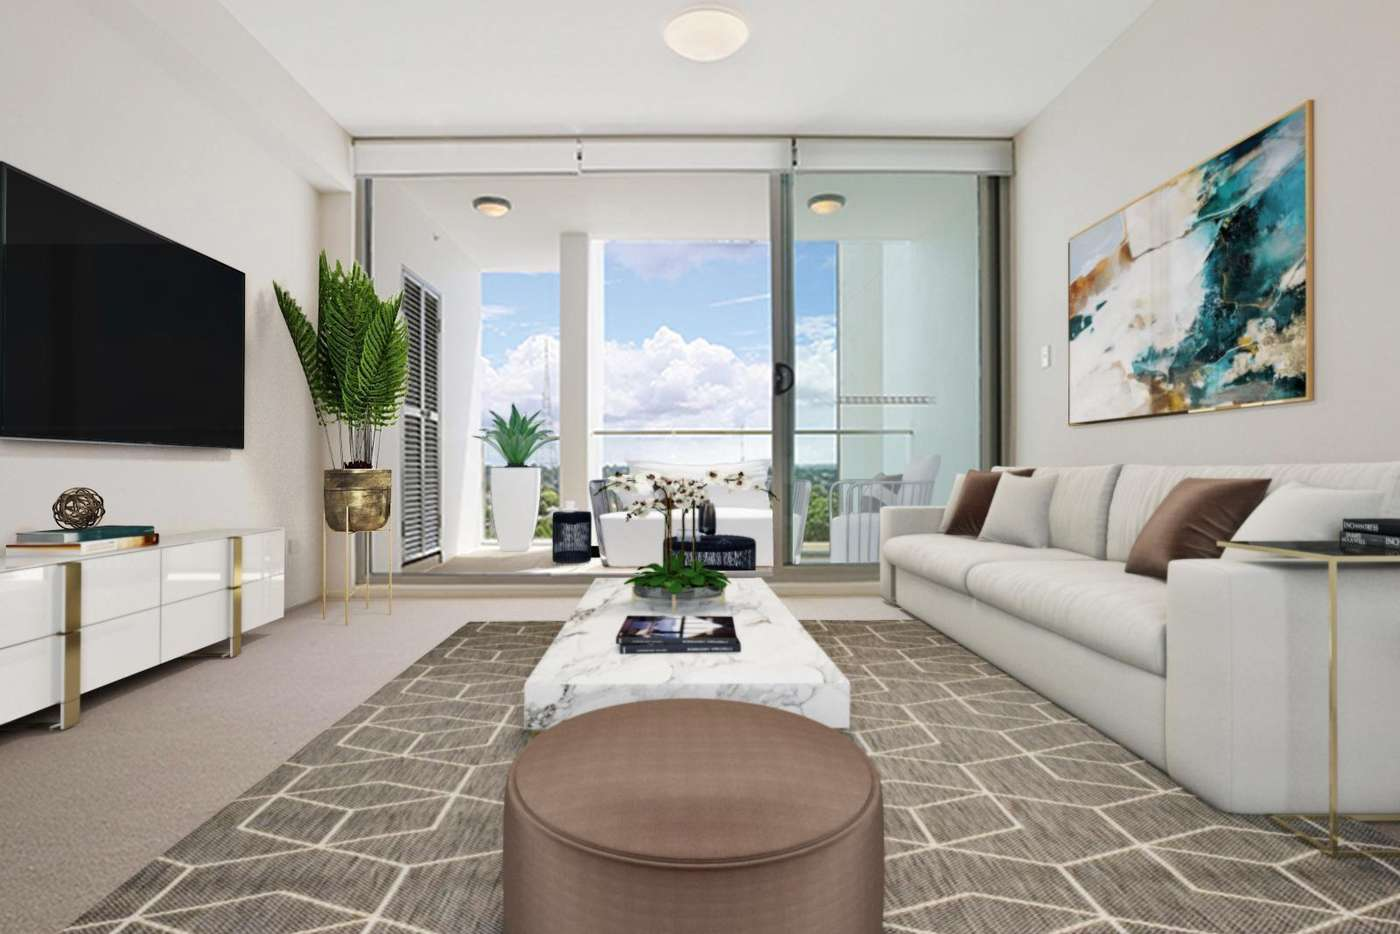 Main view of Homely apartment listing, 501/51 Chandos Street, St Leonards NSW 2065